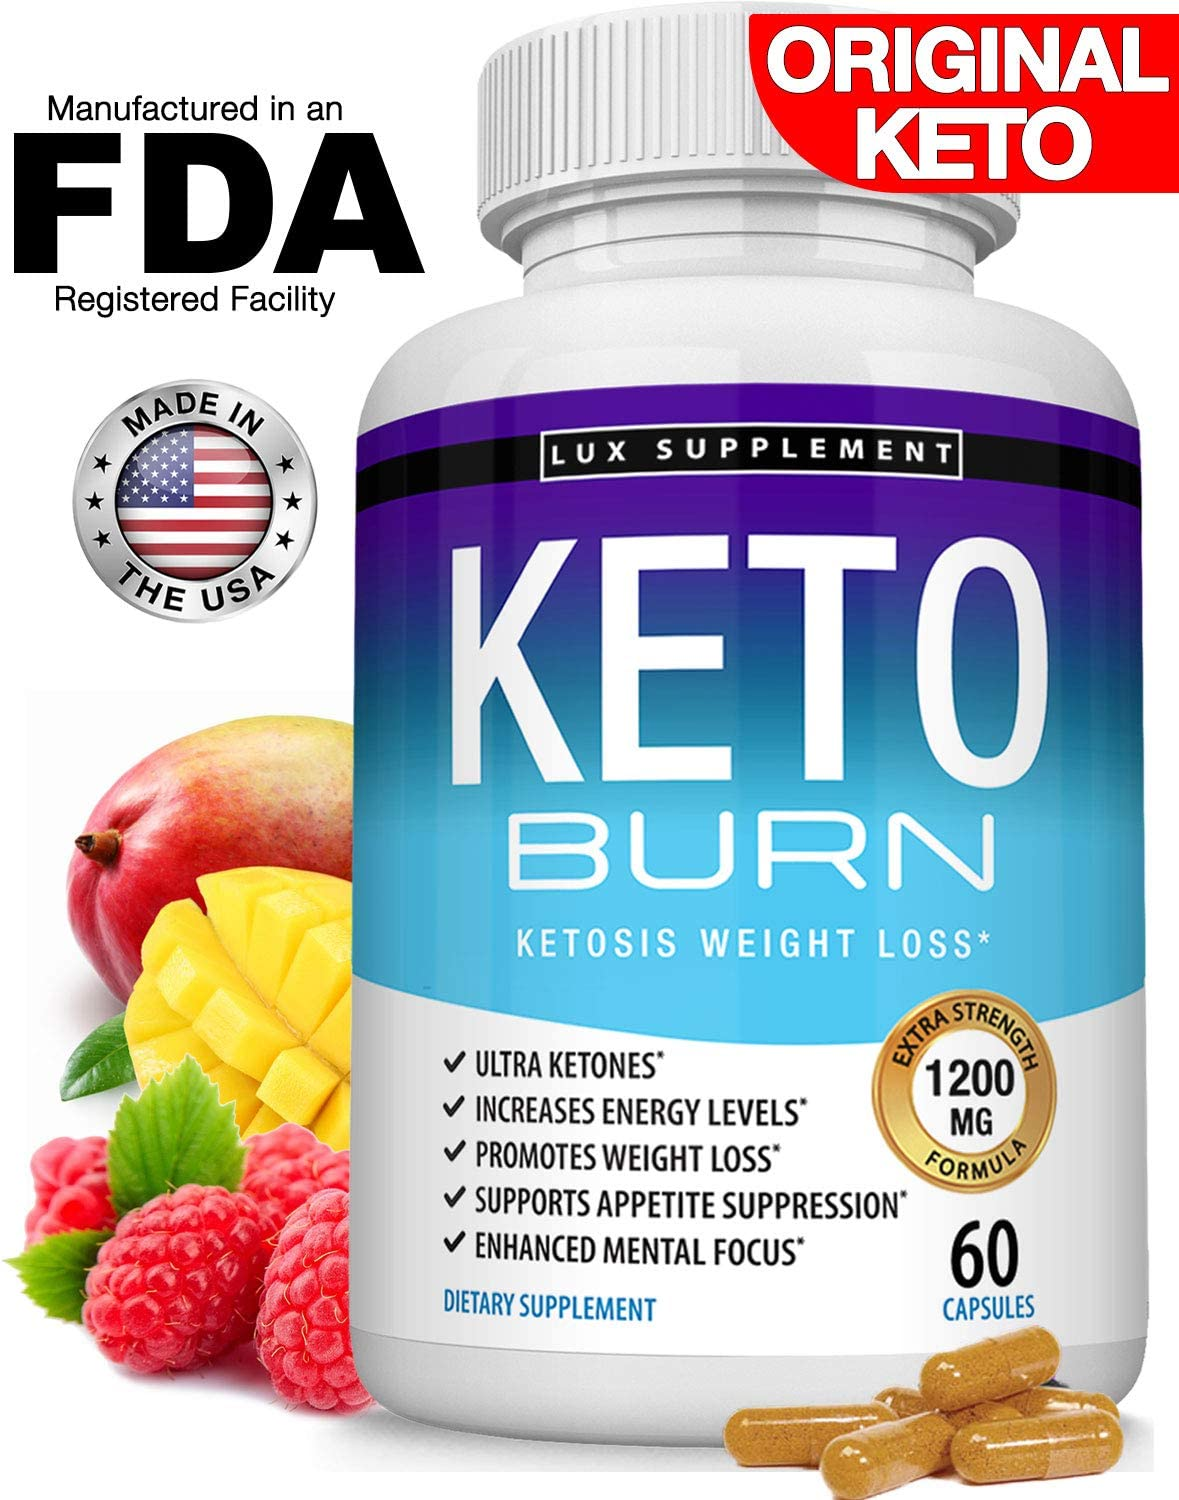 suppliment to add fat for a keto diet